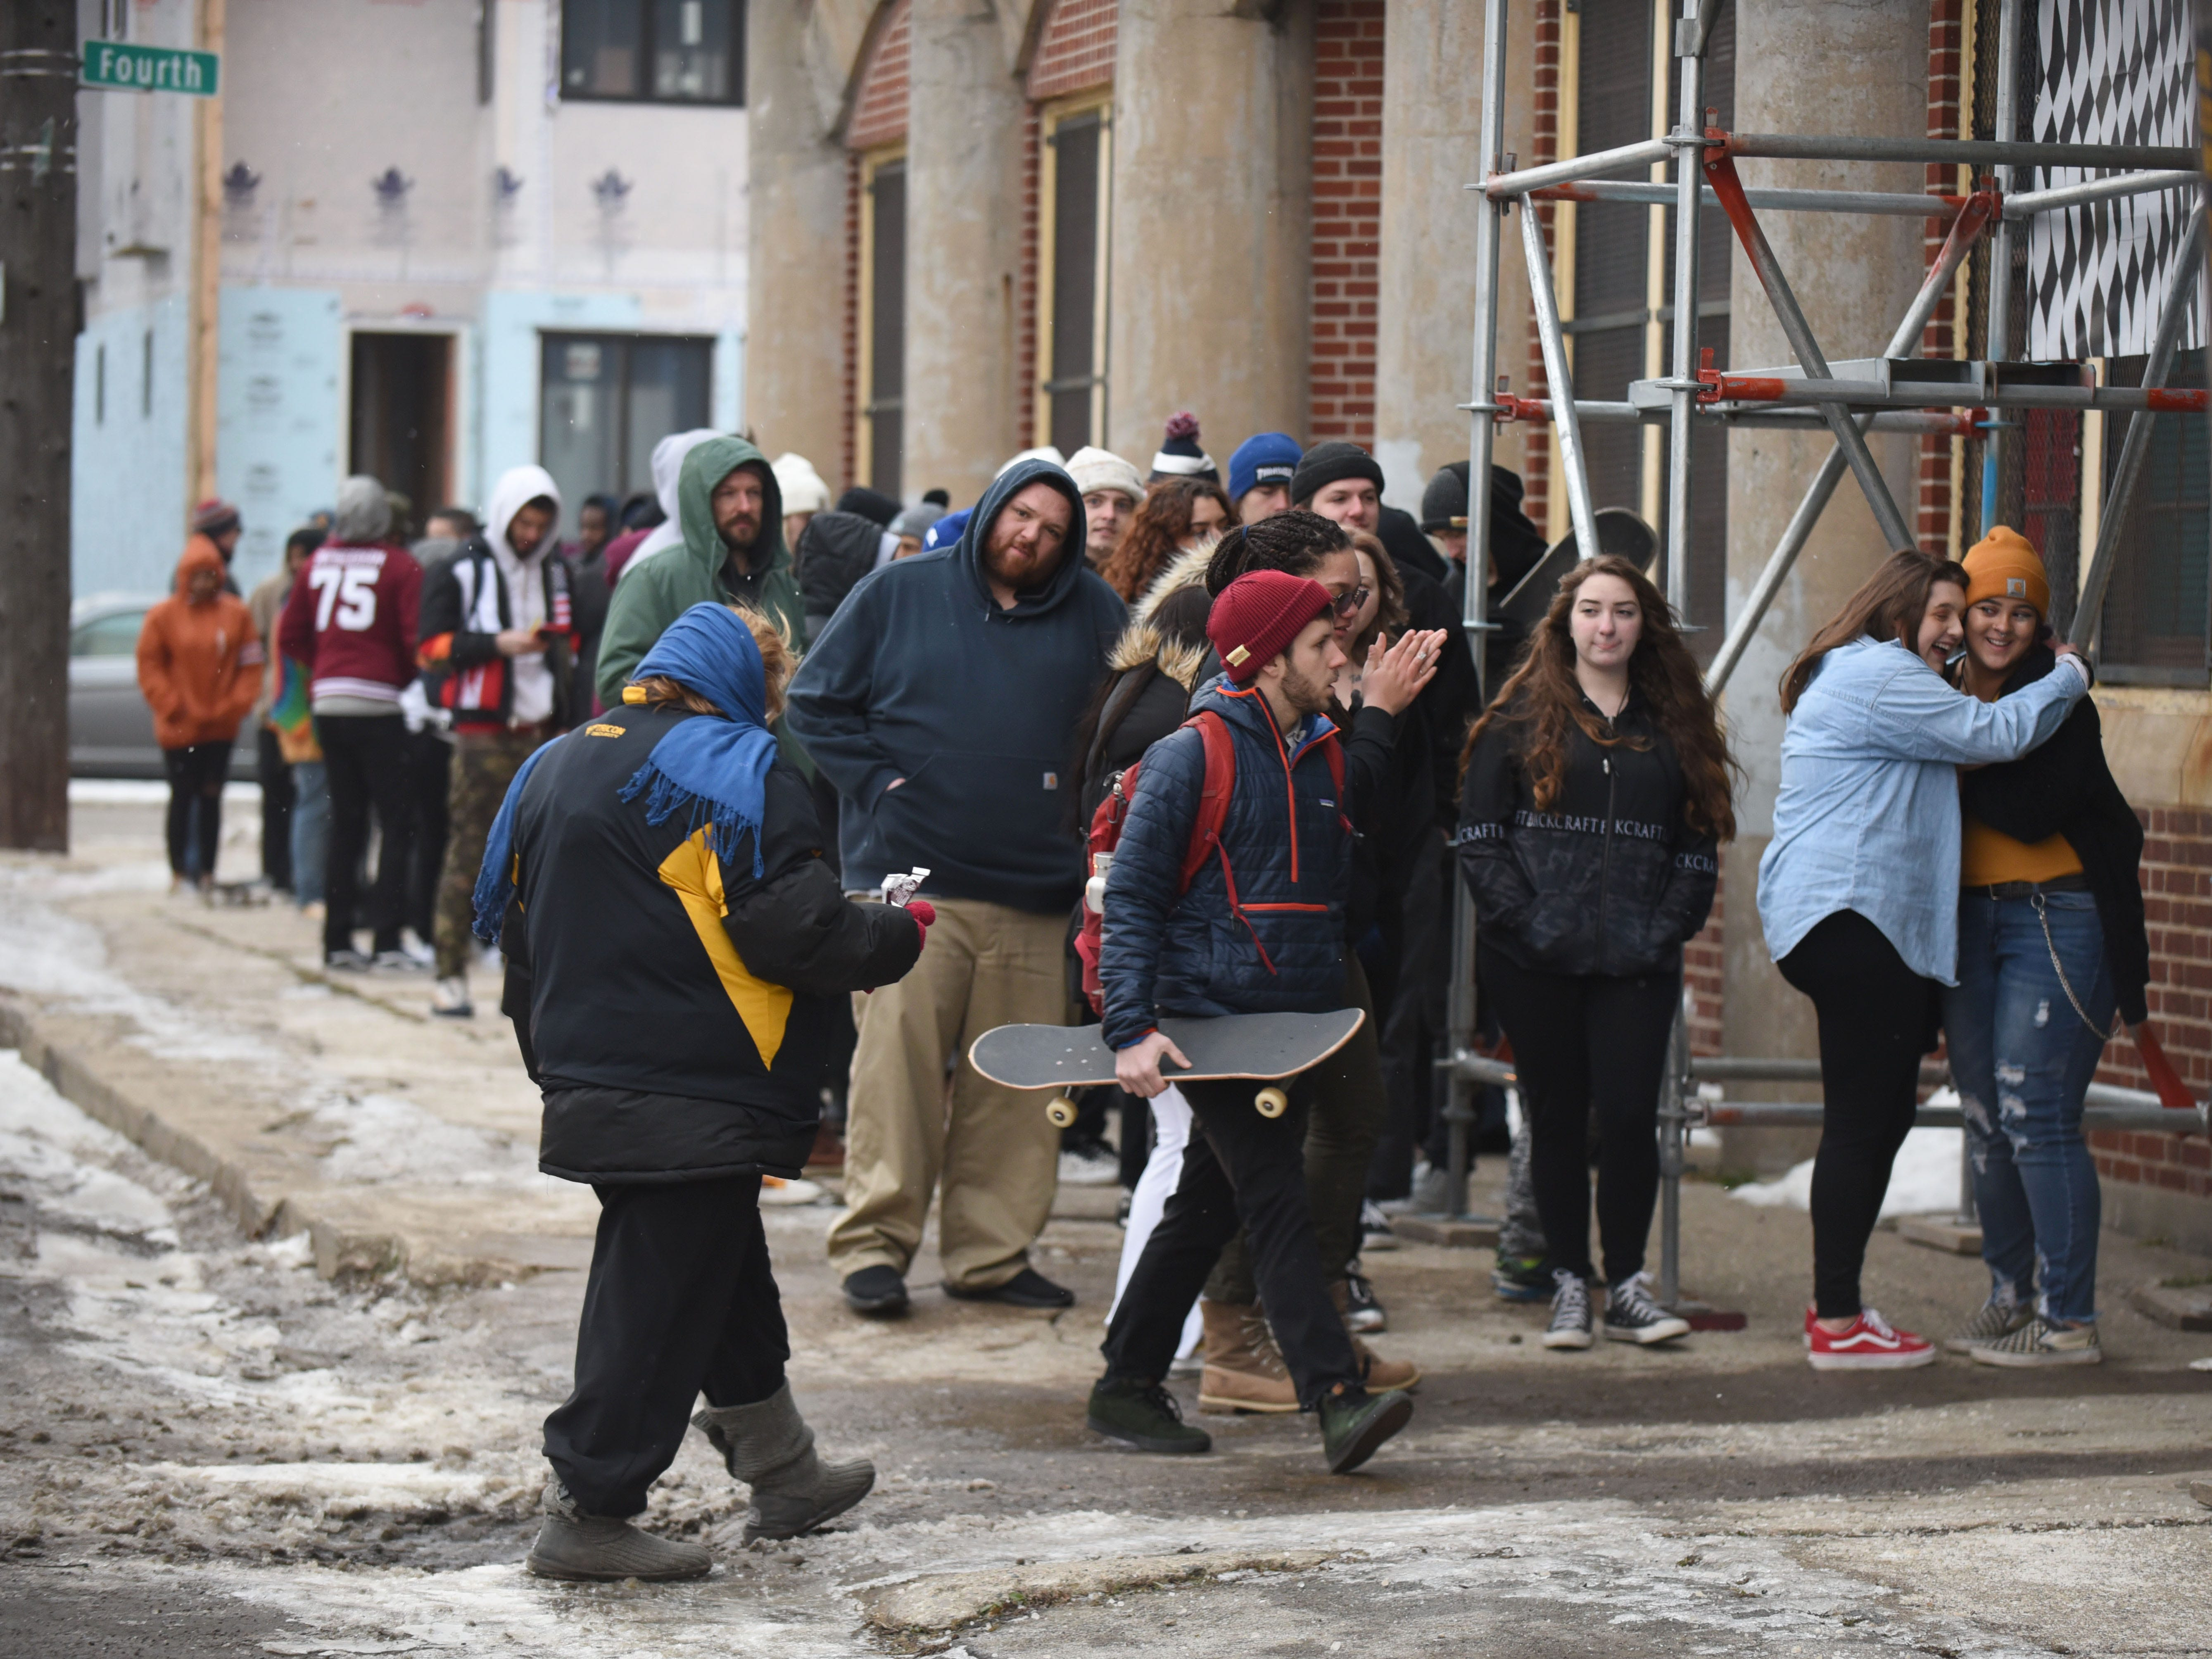 A large crowd waits outside the House of Vans pop-up event in Detroit on Thursday, Jan. 24, 2019.